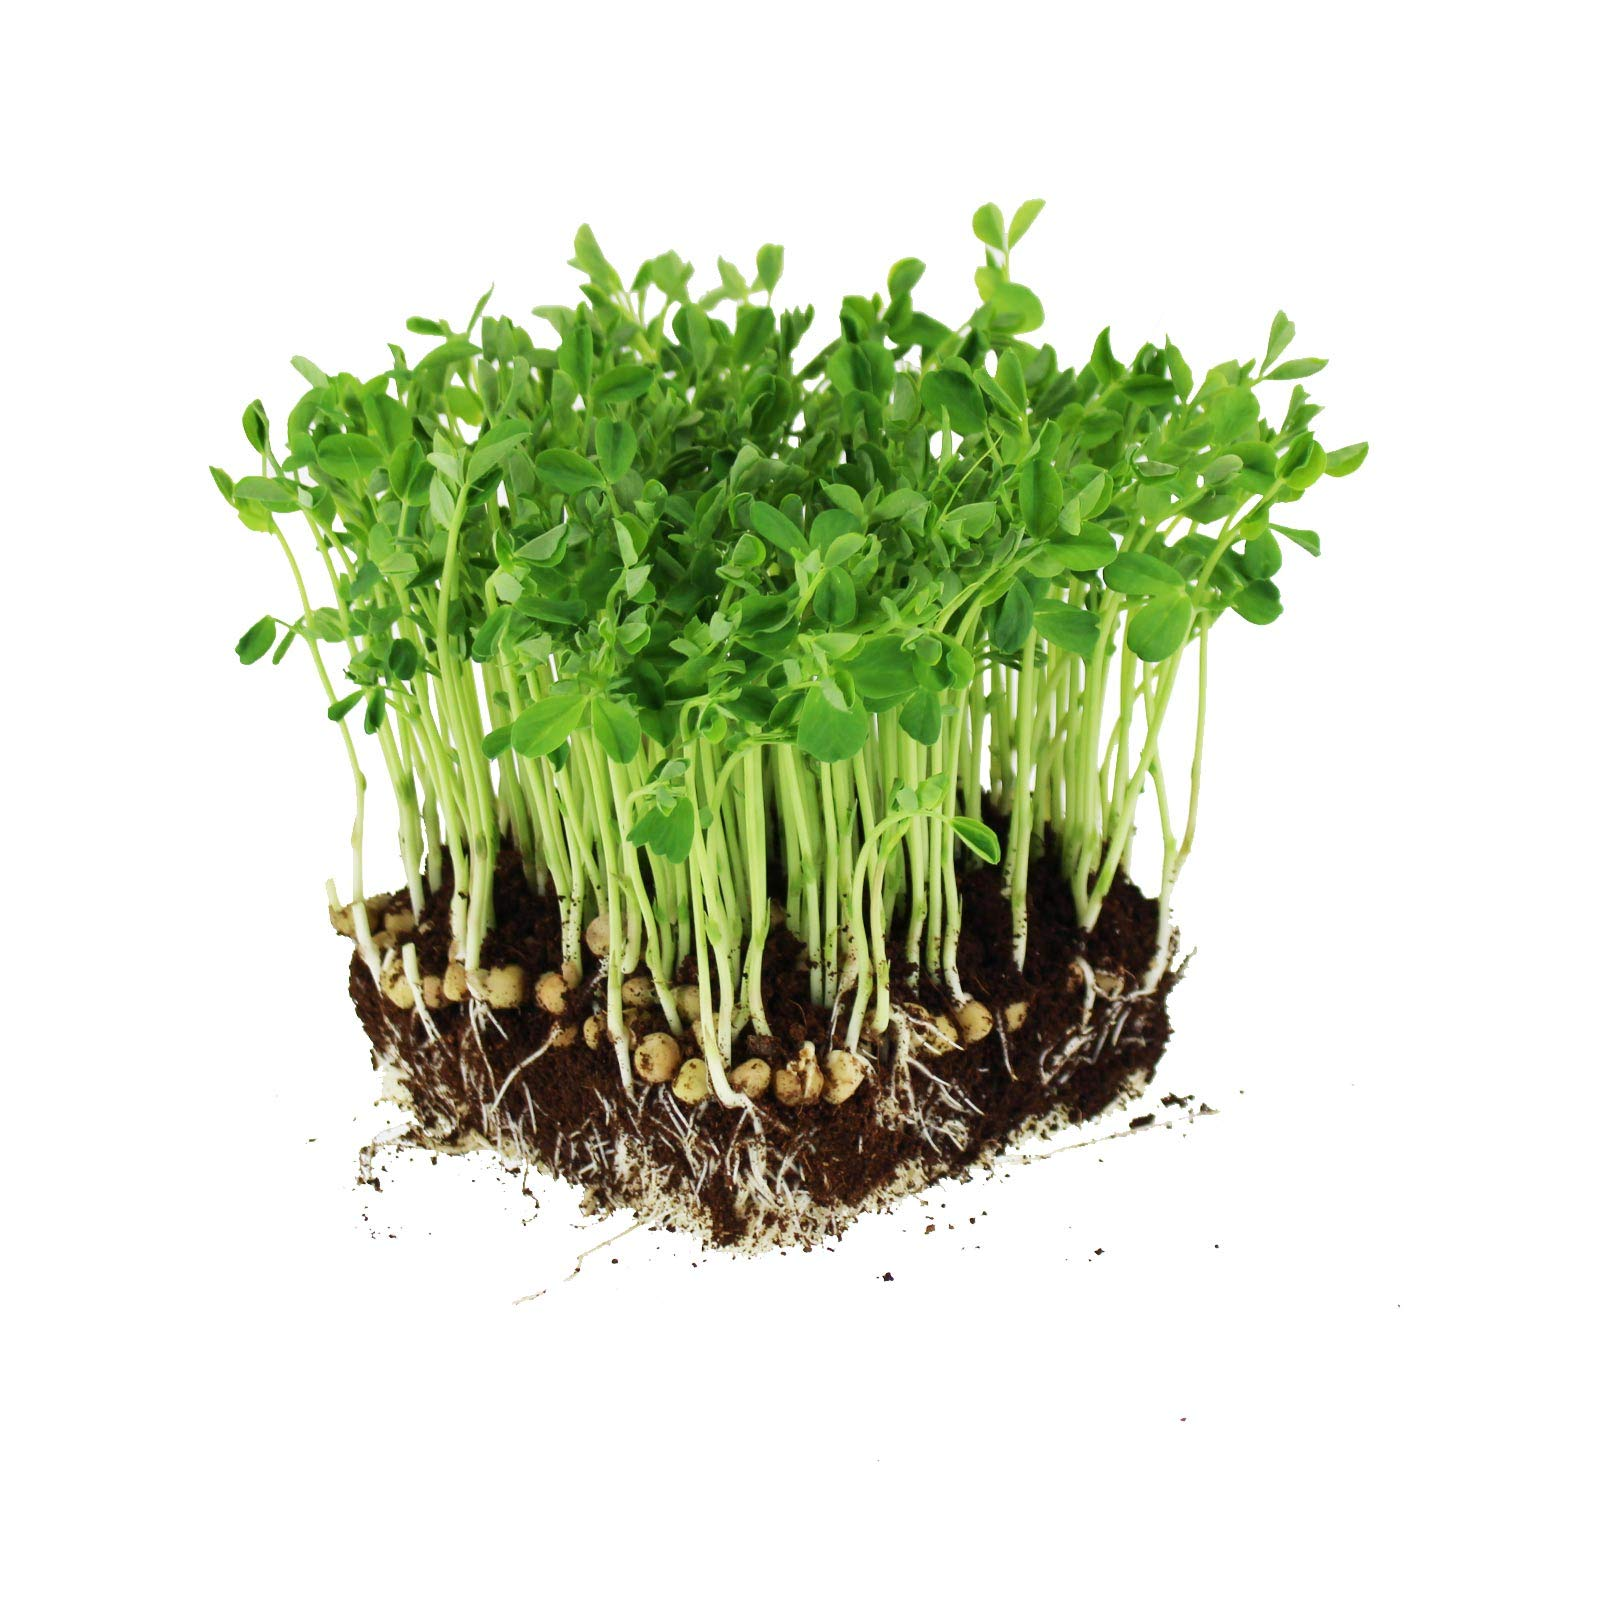 Dun Pea Seeds: 25 Lb - Bulk, Non-GMO Peas Sprouting Seeds for Vegetable Gardening, Cover Crop, Micro Green Pea Shoots by Mountain Valley Seed Company